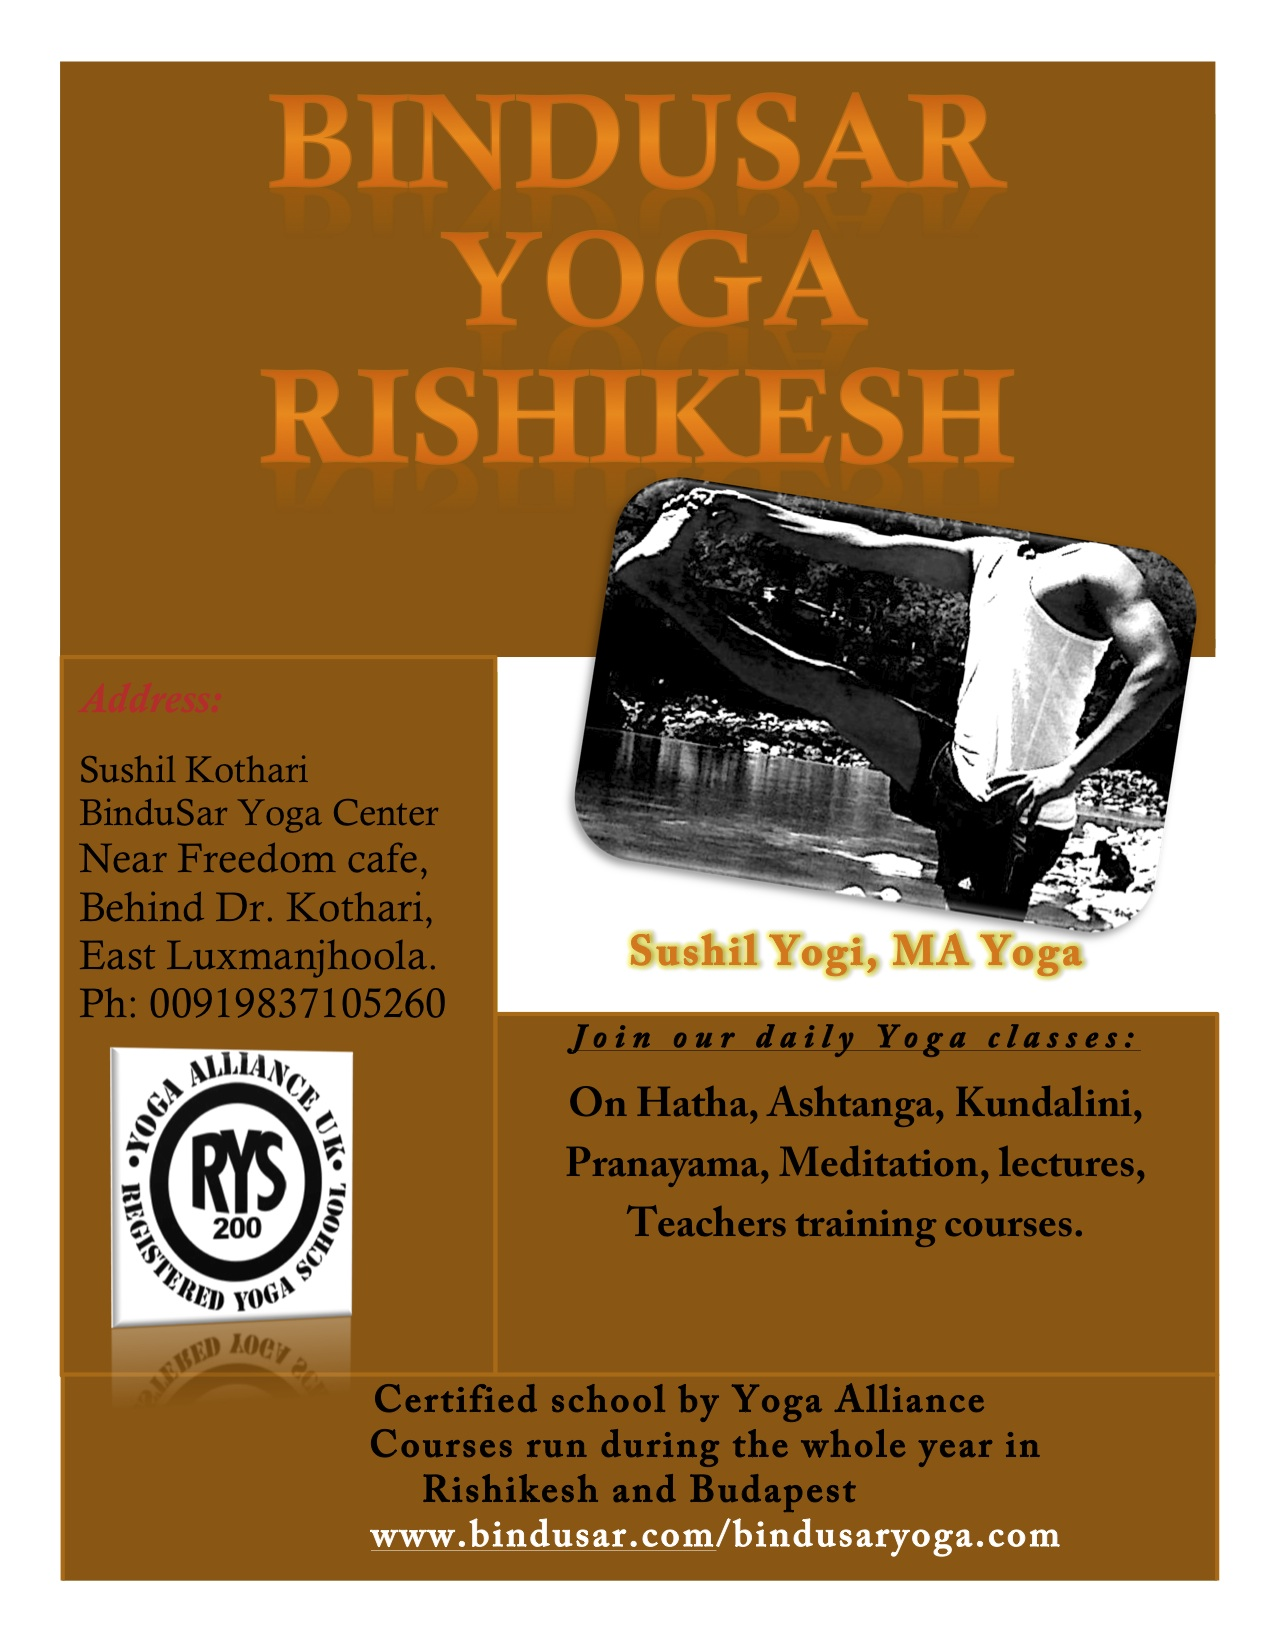 BinduSar Yoga Rishikesh   From Authentic Sources